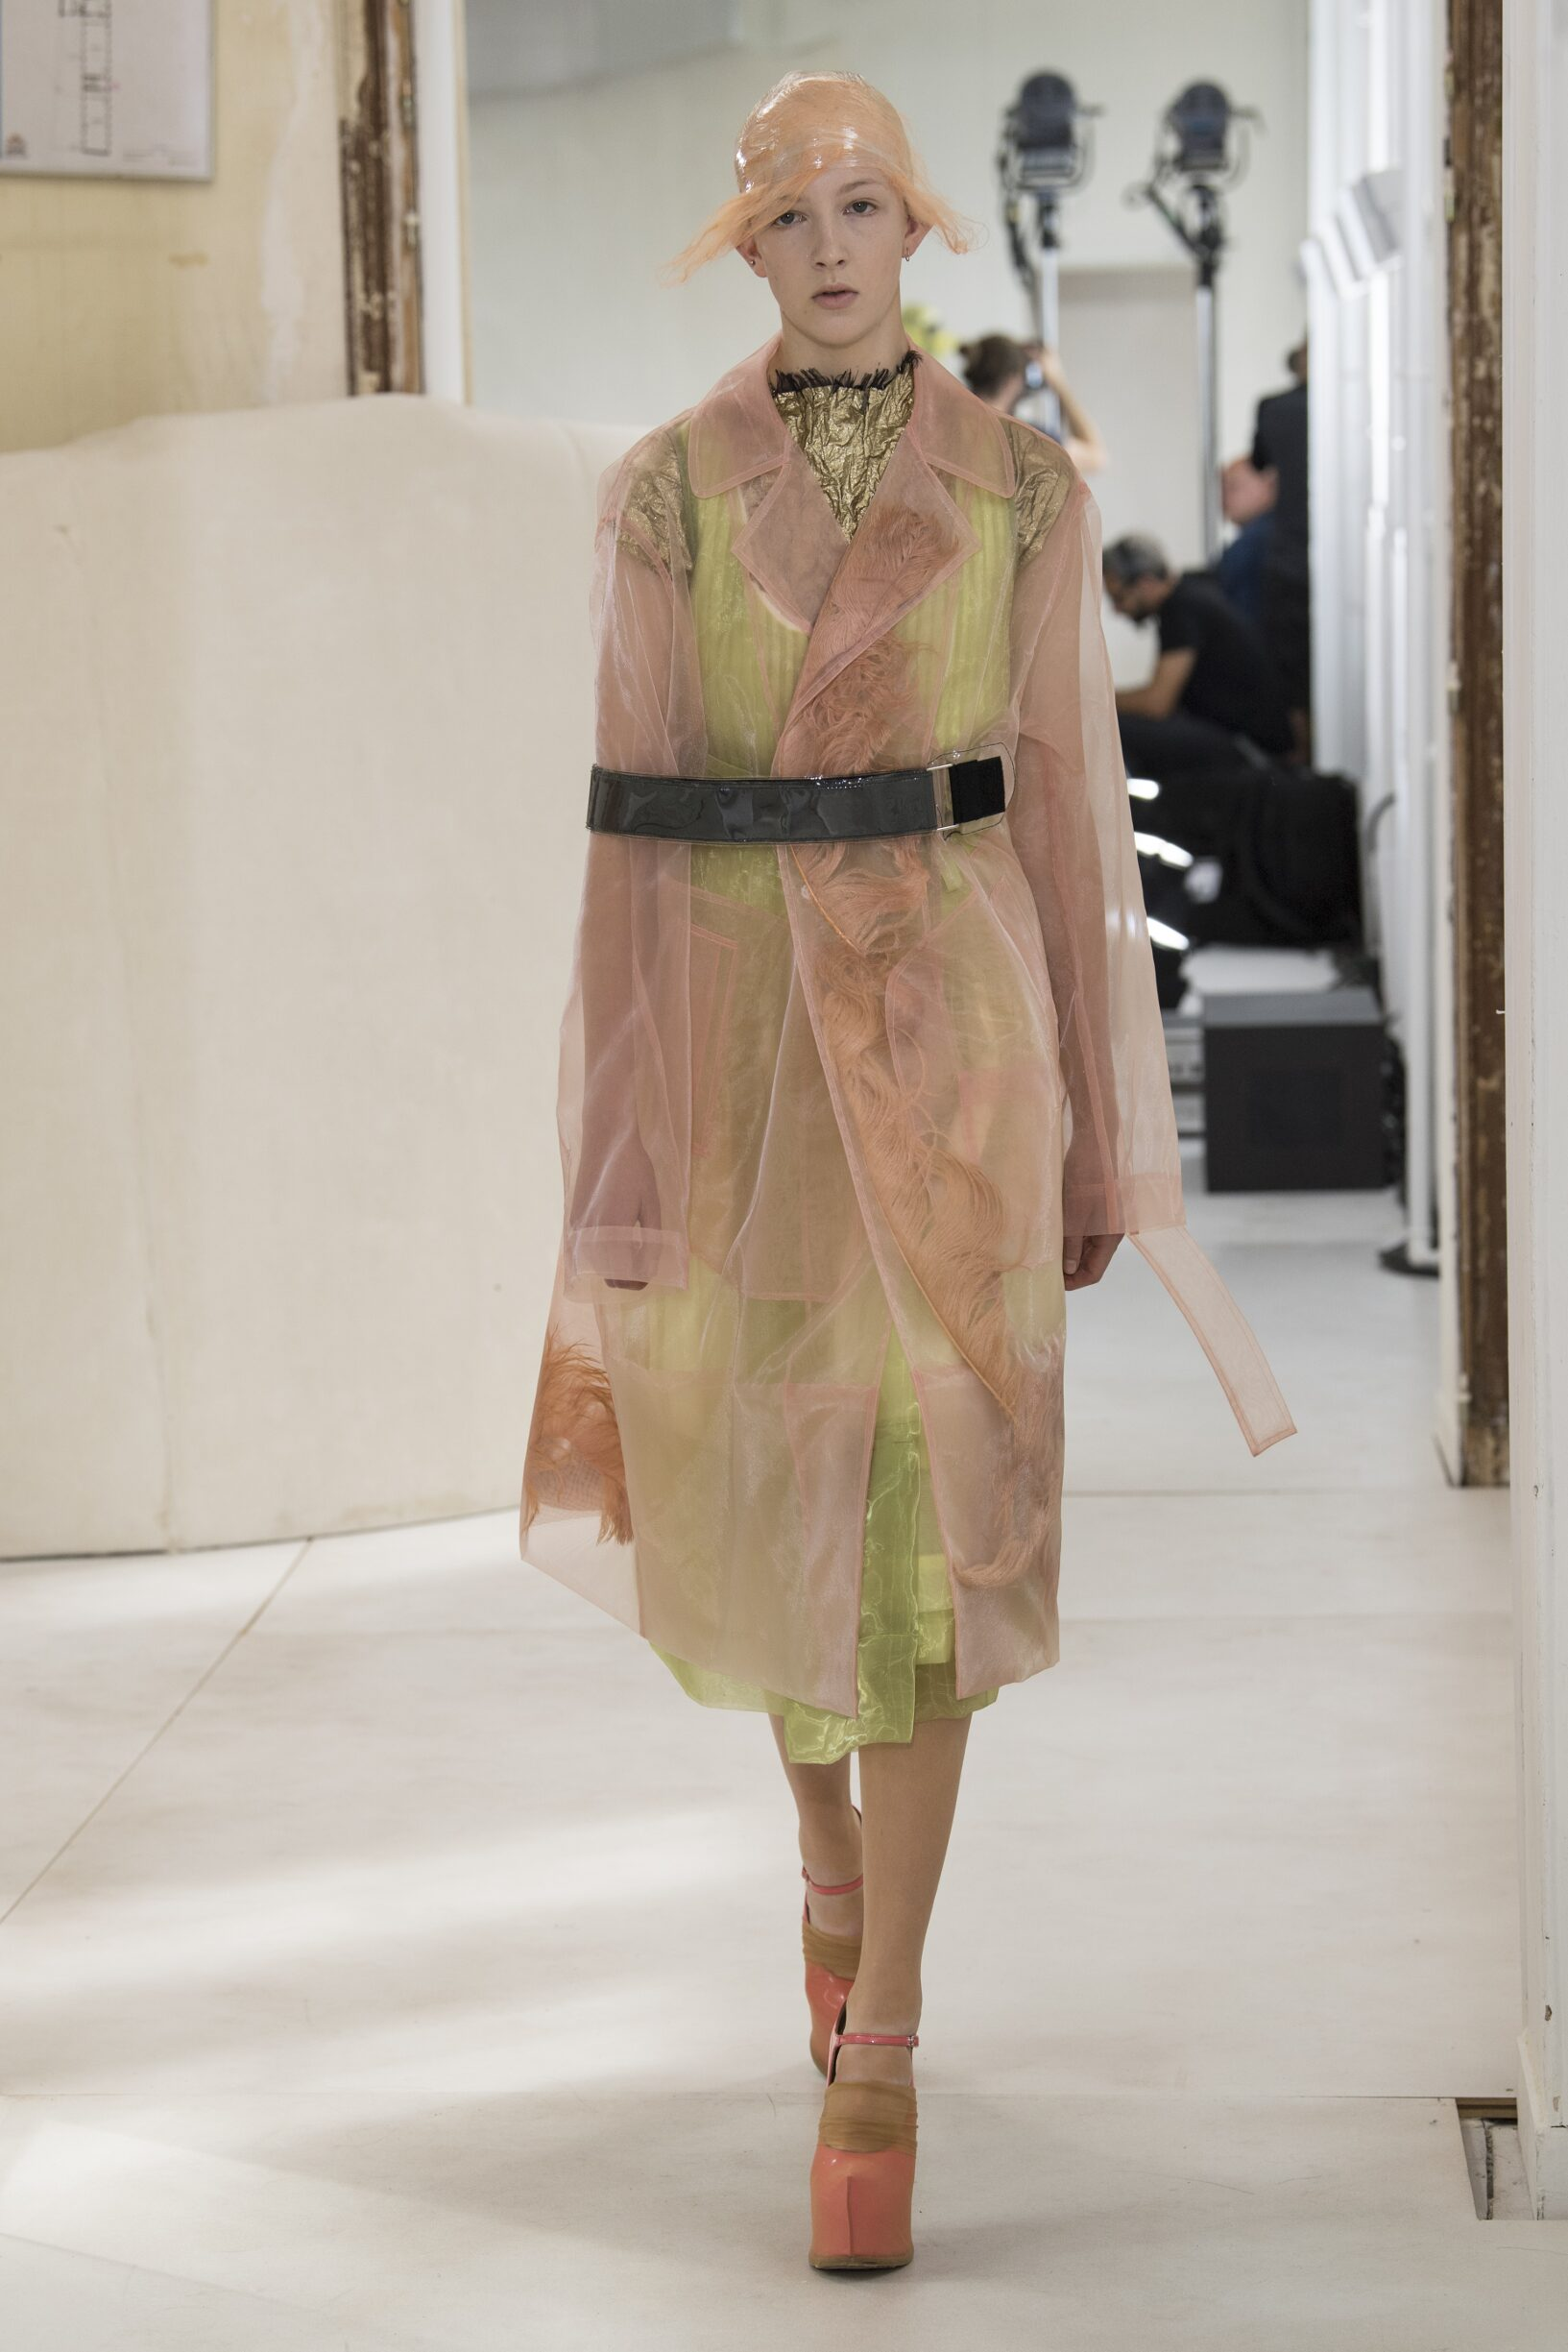 Maison Margiela Artisanal Womenswear Fashion Show